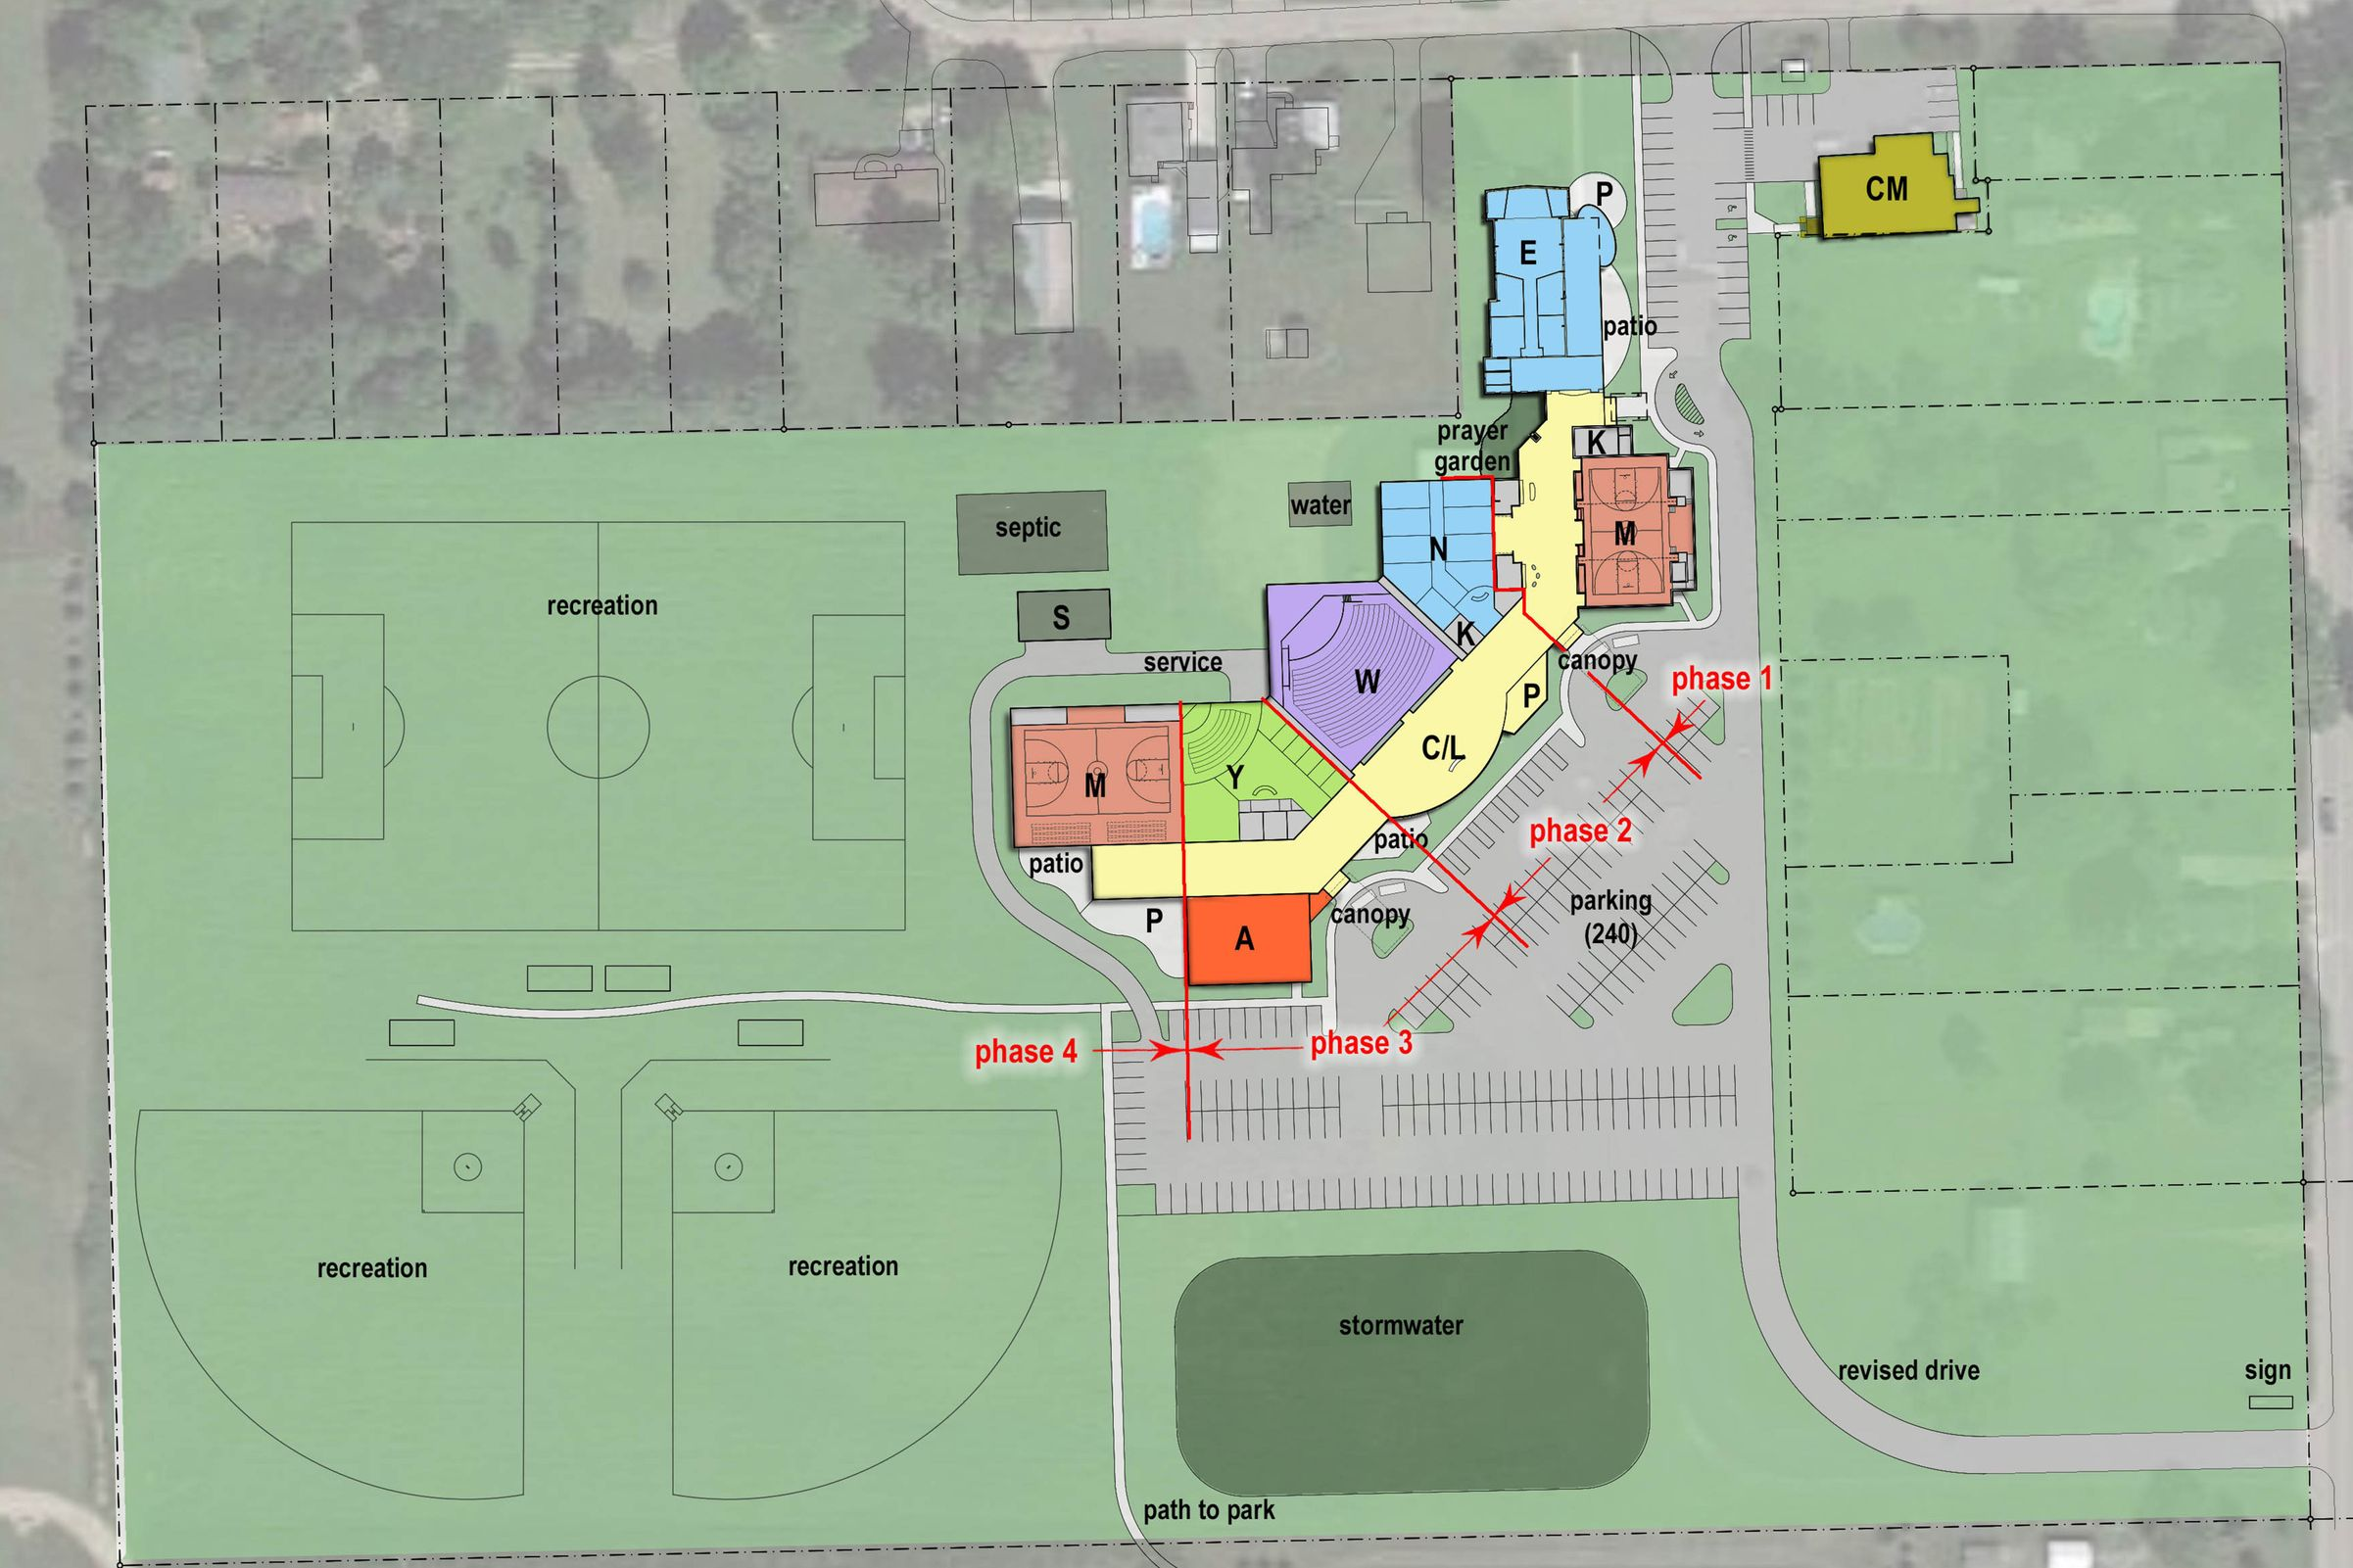 170207 Master Plan with Phases 24x36 a.jpg